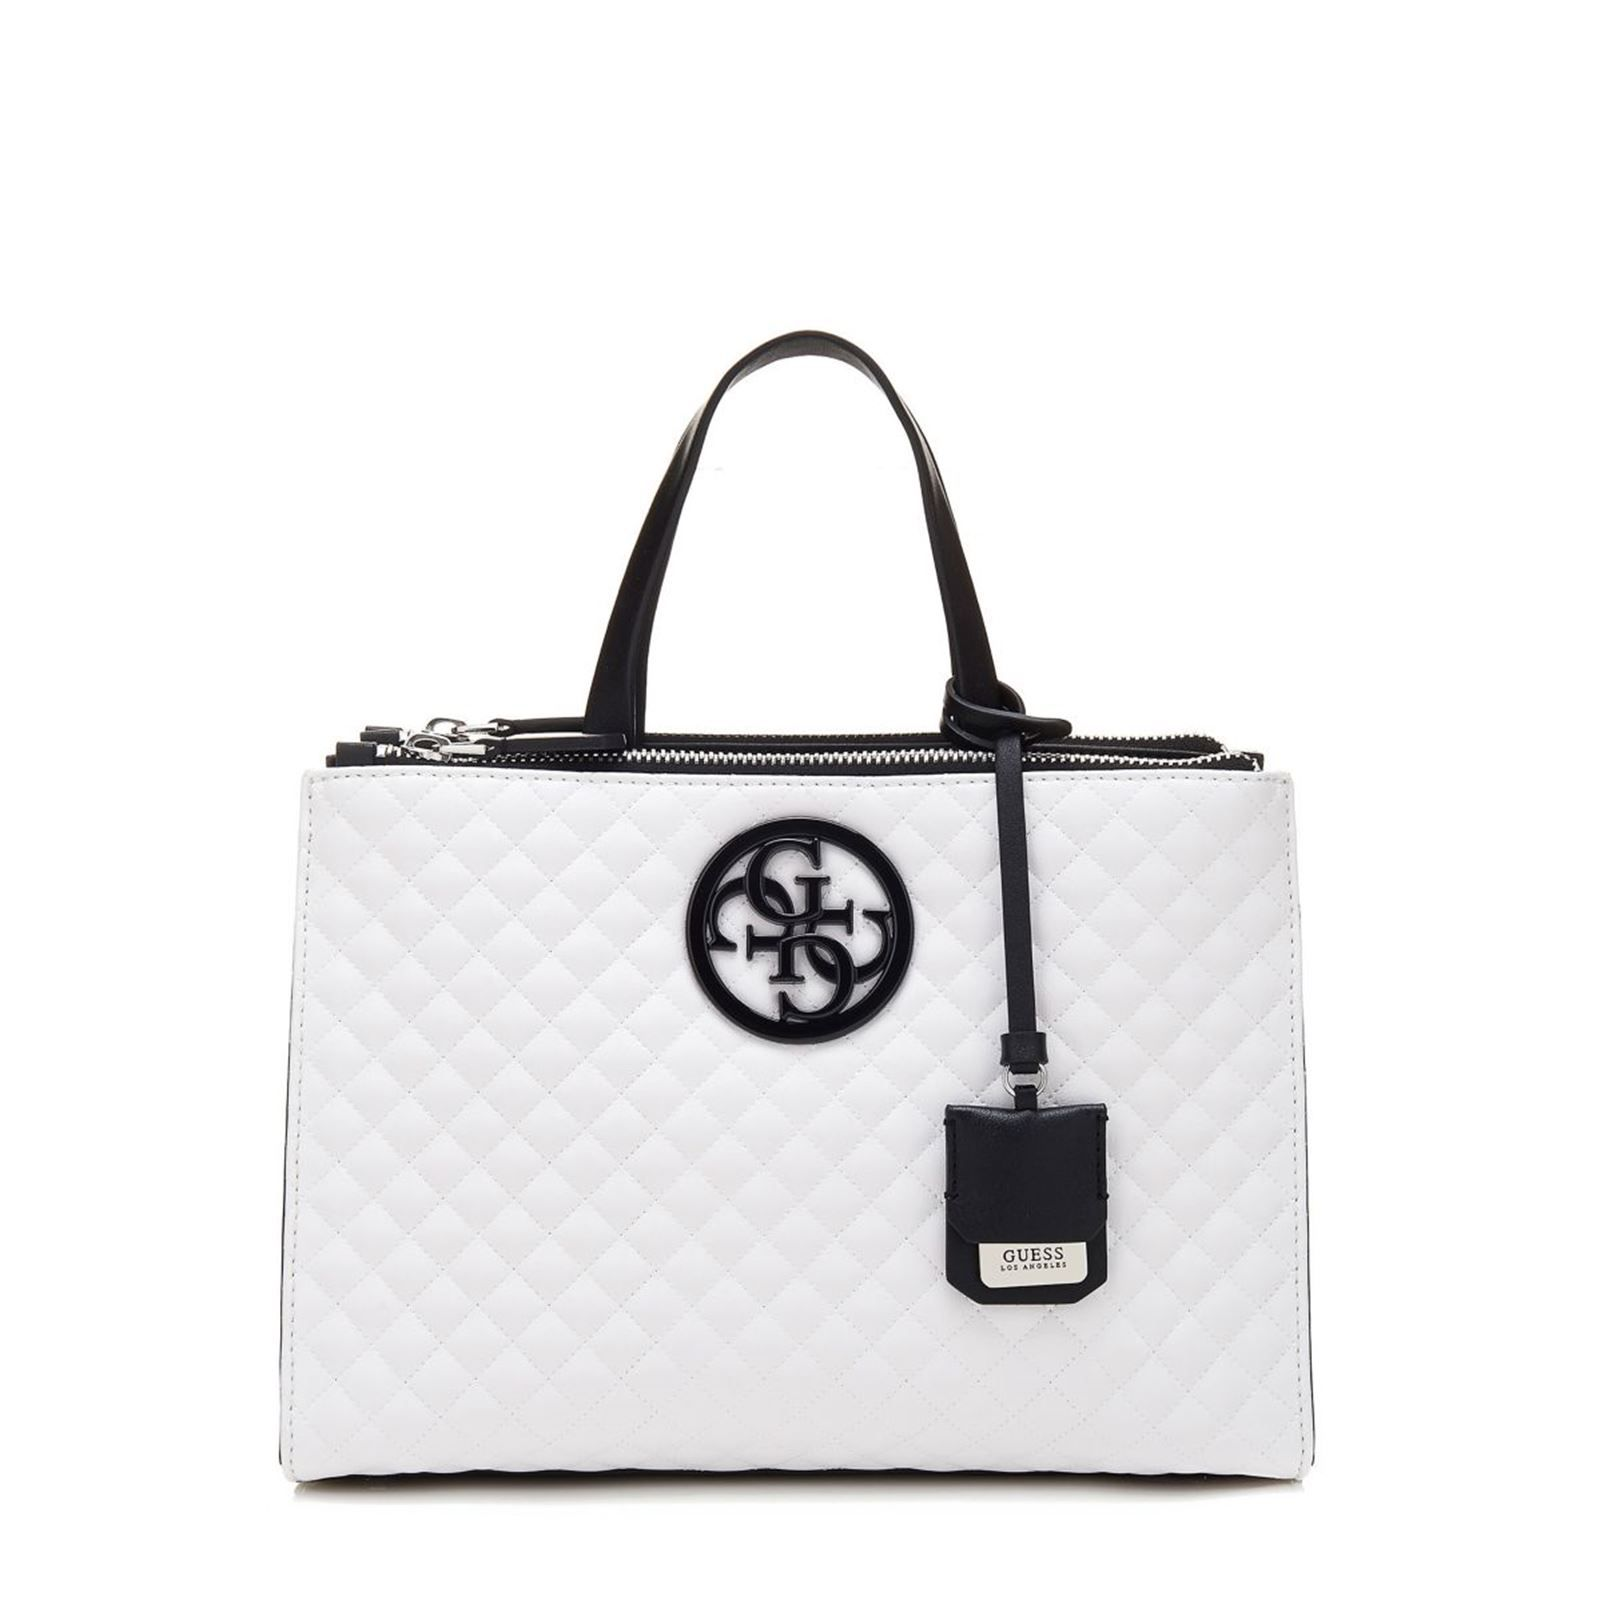 26b31af59c05a Guess G Luxe - Sac cabas - blanc   BrandAlley